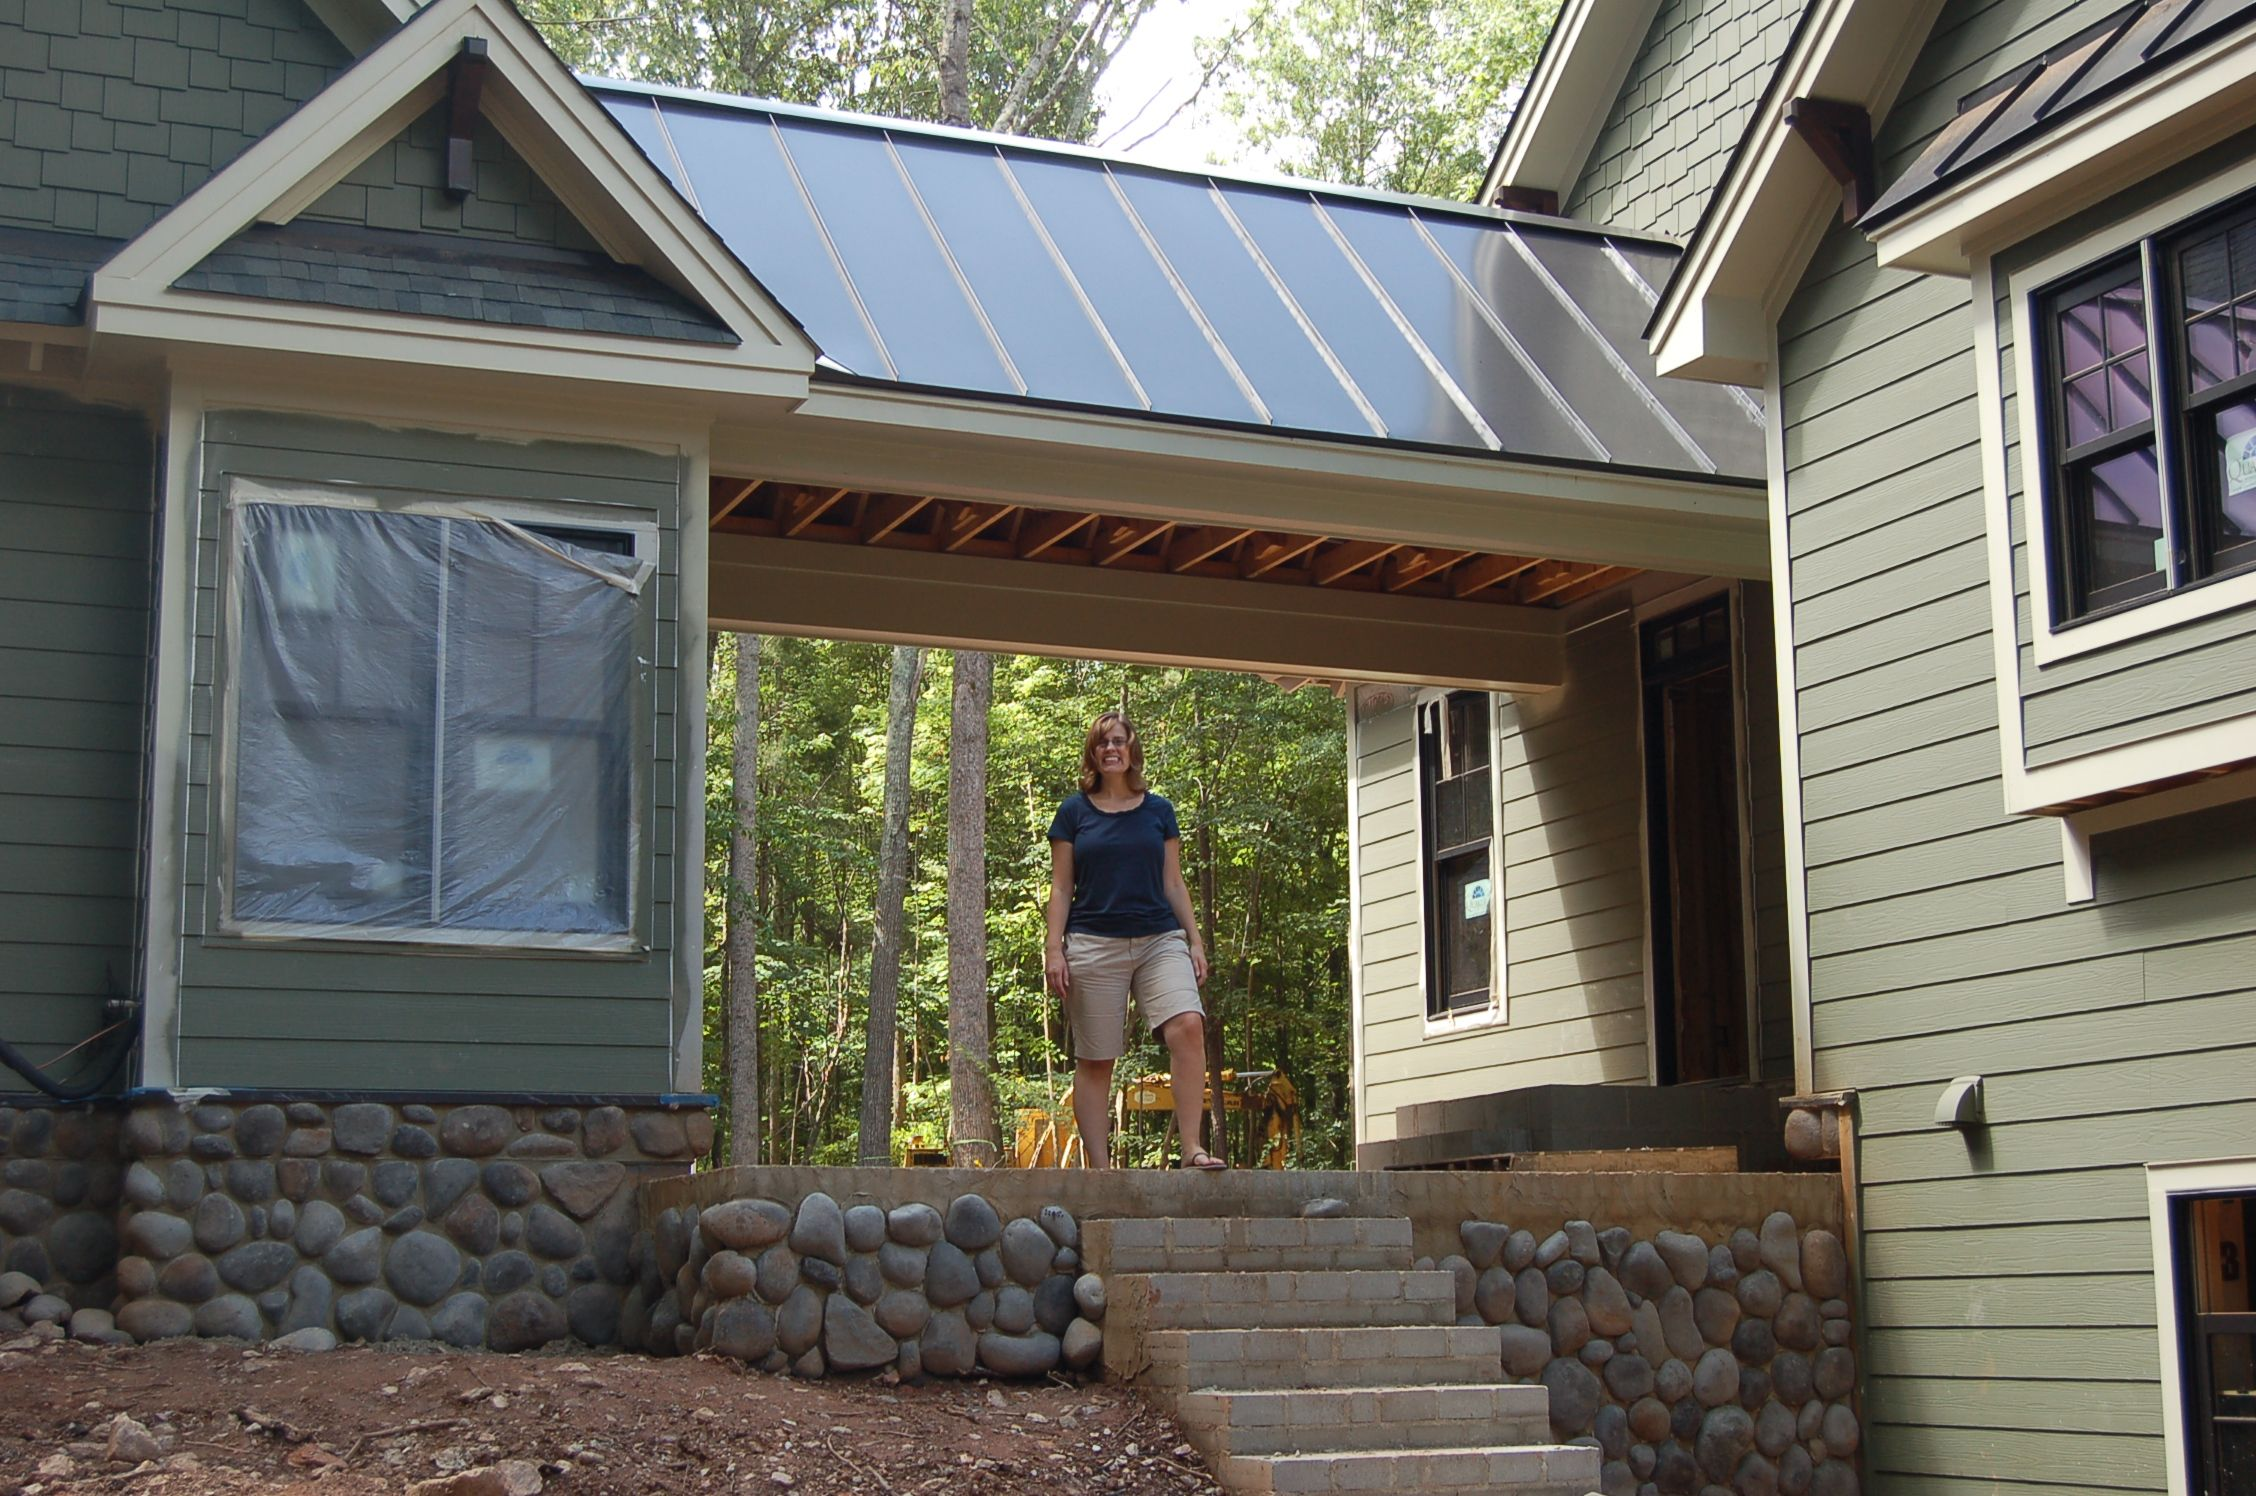 1000 Images About Breezeway On Pinterest Solar Stairs